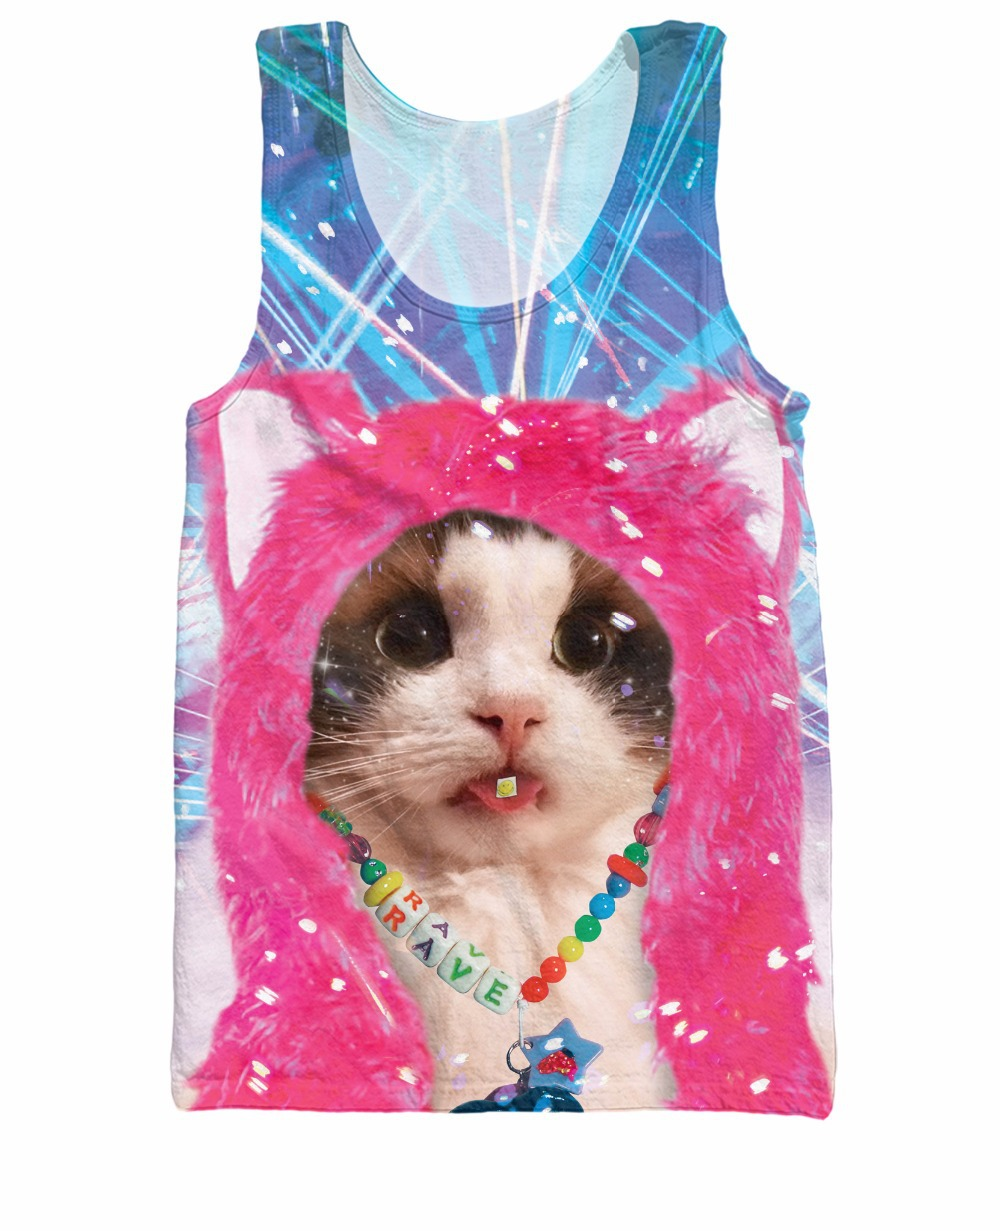 Fashion Clothing Tops Rave Kitty Tank Top Women Sexy Vest Men Casual Camis Summer Style Shirt tee plus size